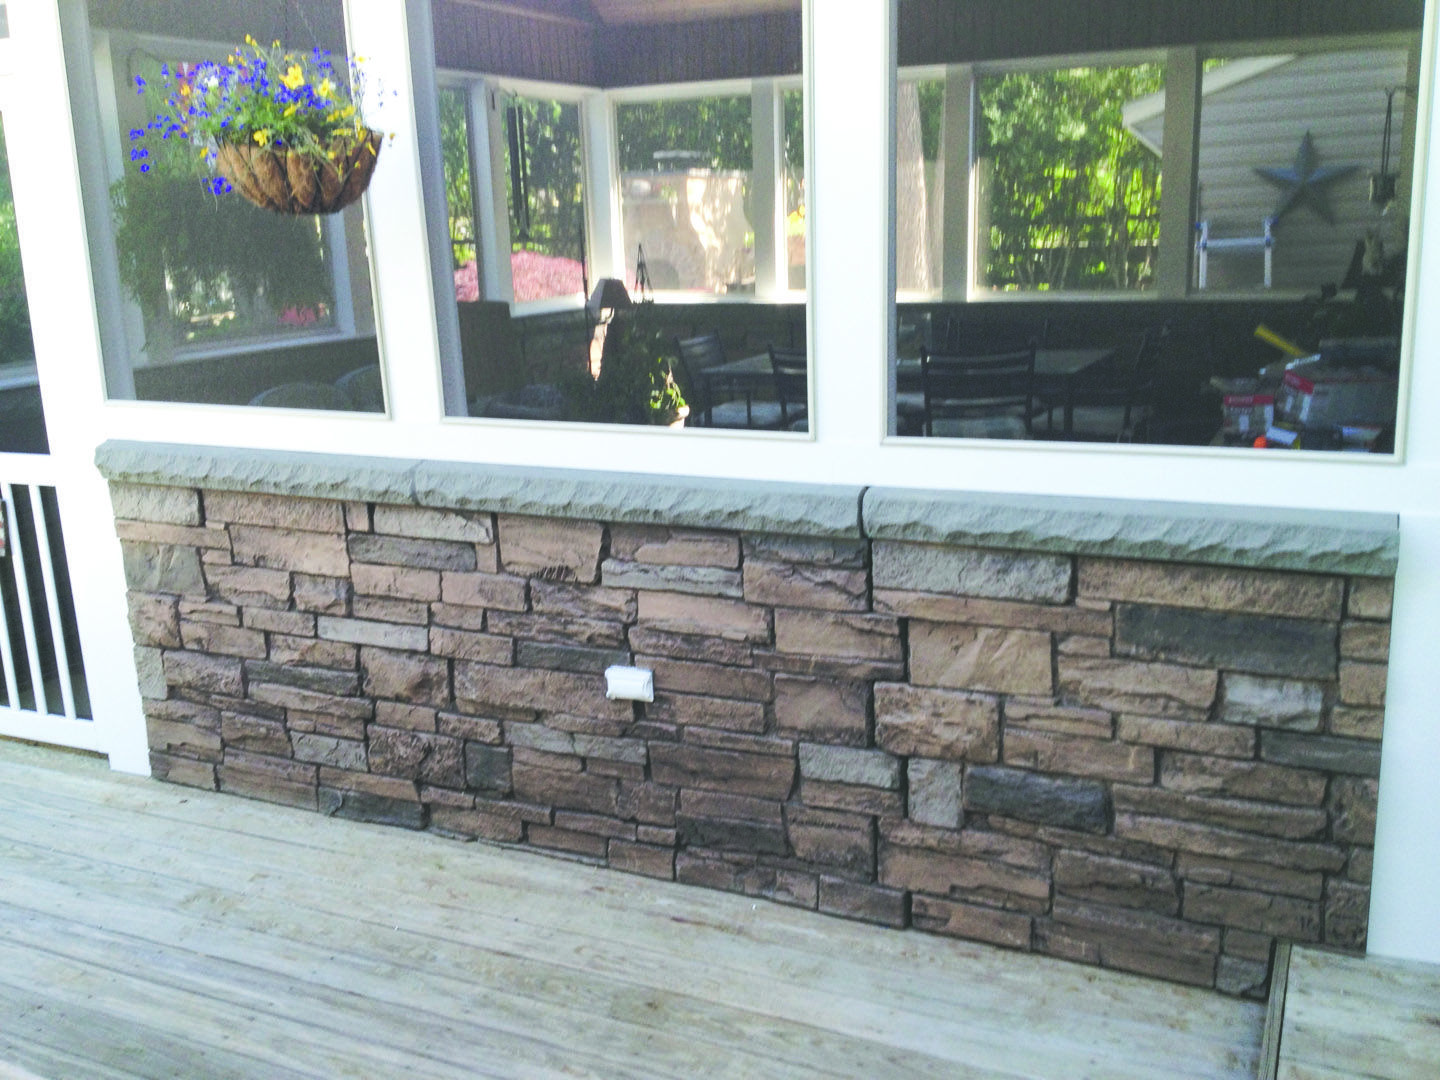 Ledgestone Wainscot Panel Really Adds To This Porch So Easy To Install Fauxstonesheets Com Faux Stone Wall Panels Faux Stone Panels Faux Stone Walls